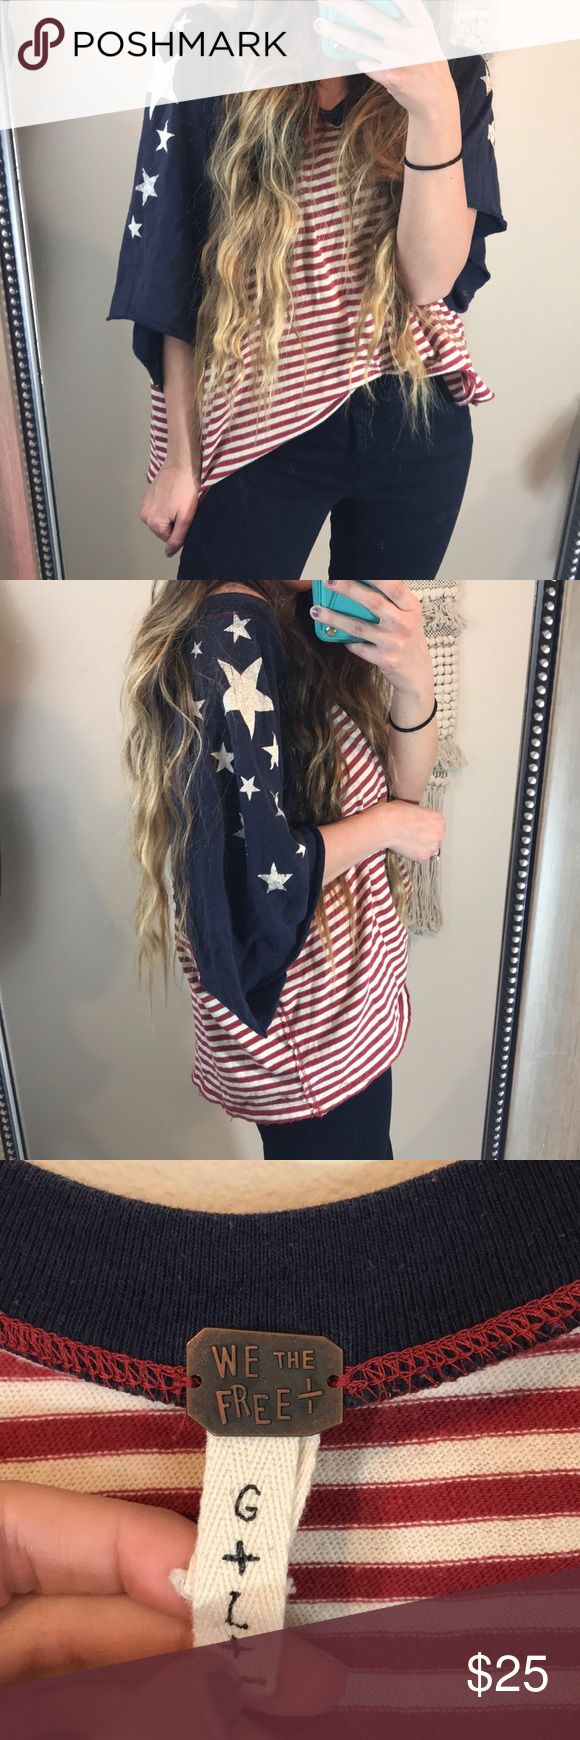 We The Free Stars &Stripes Raw Hem Oversized Shirt We the free  Size large  Batwing  Red & white striped with navy blue sleeves with stars Shirt was made to look more distressed, (faded stars, raw hem) Lightly worn, in good condition! Free People Tops Tees - Short Sleeve